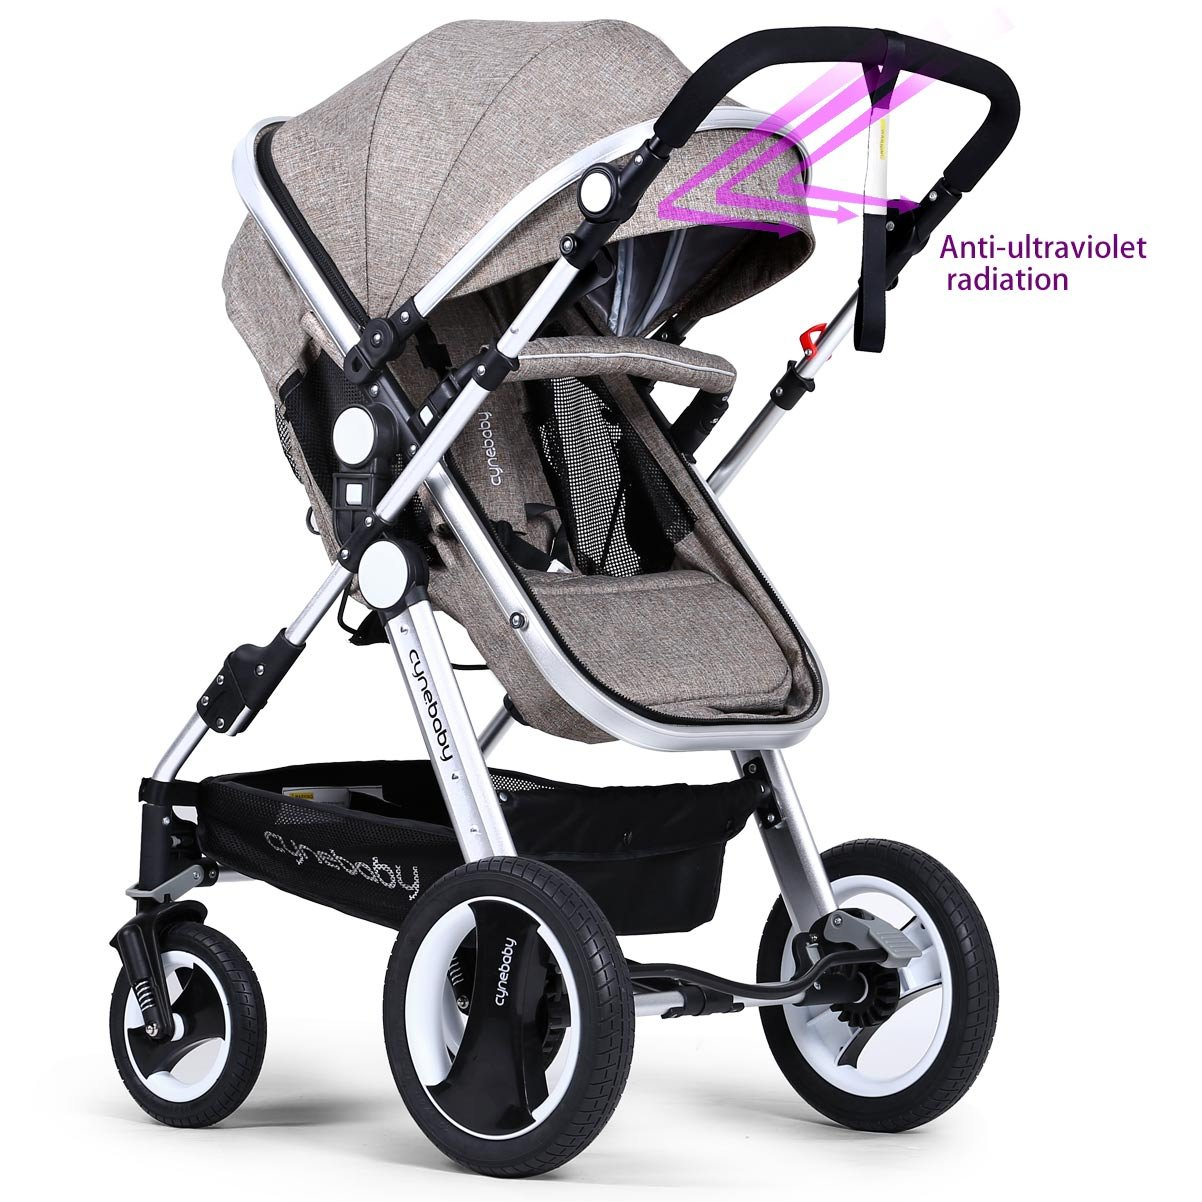 Infant Toddler Baby Stroller Carriage - Cynebaby Compact Pram Strollers add Tray (Khaki) by cynebaby (Image #4)